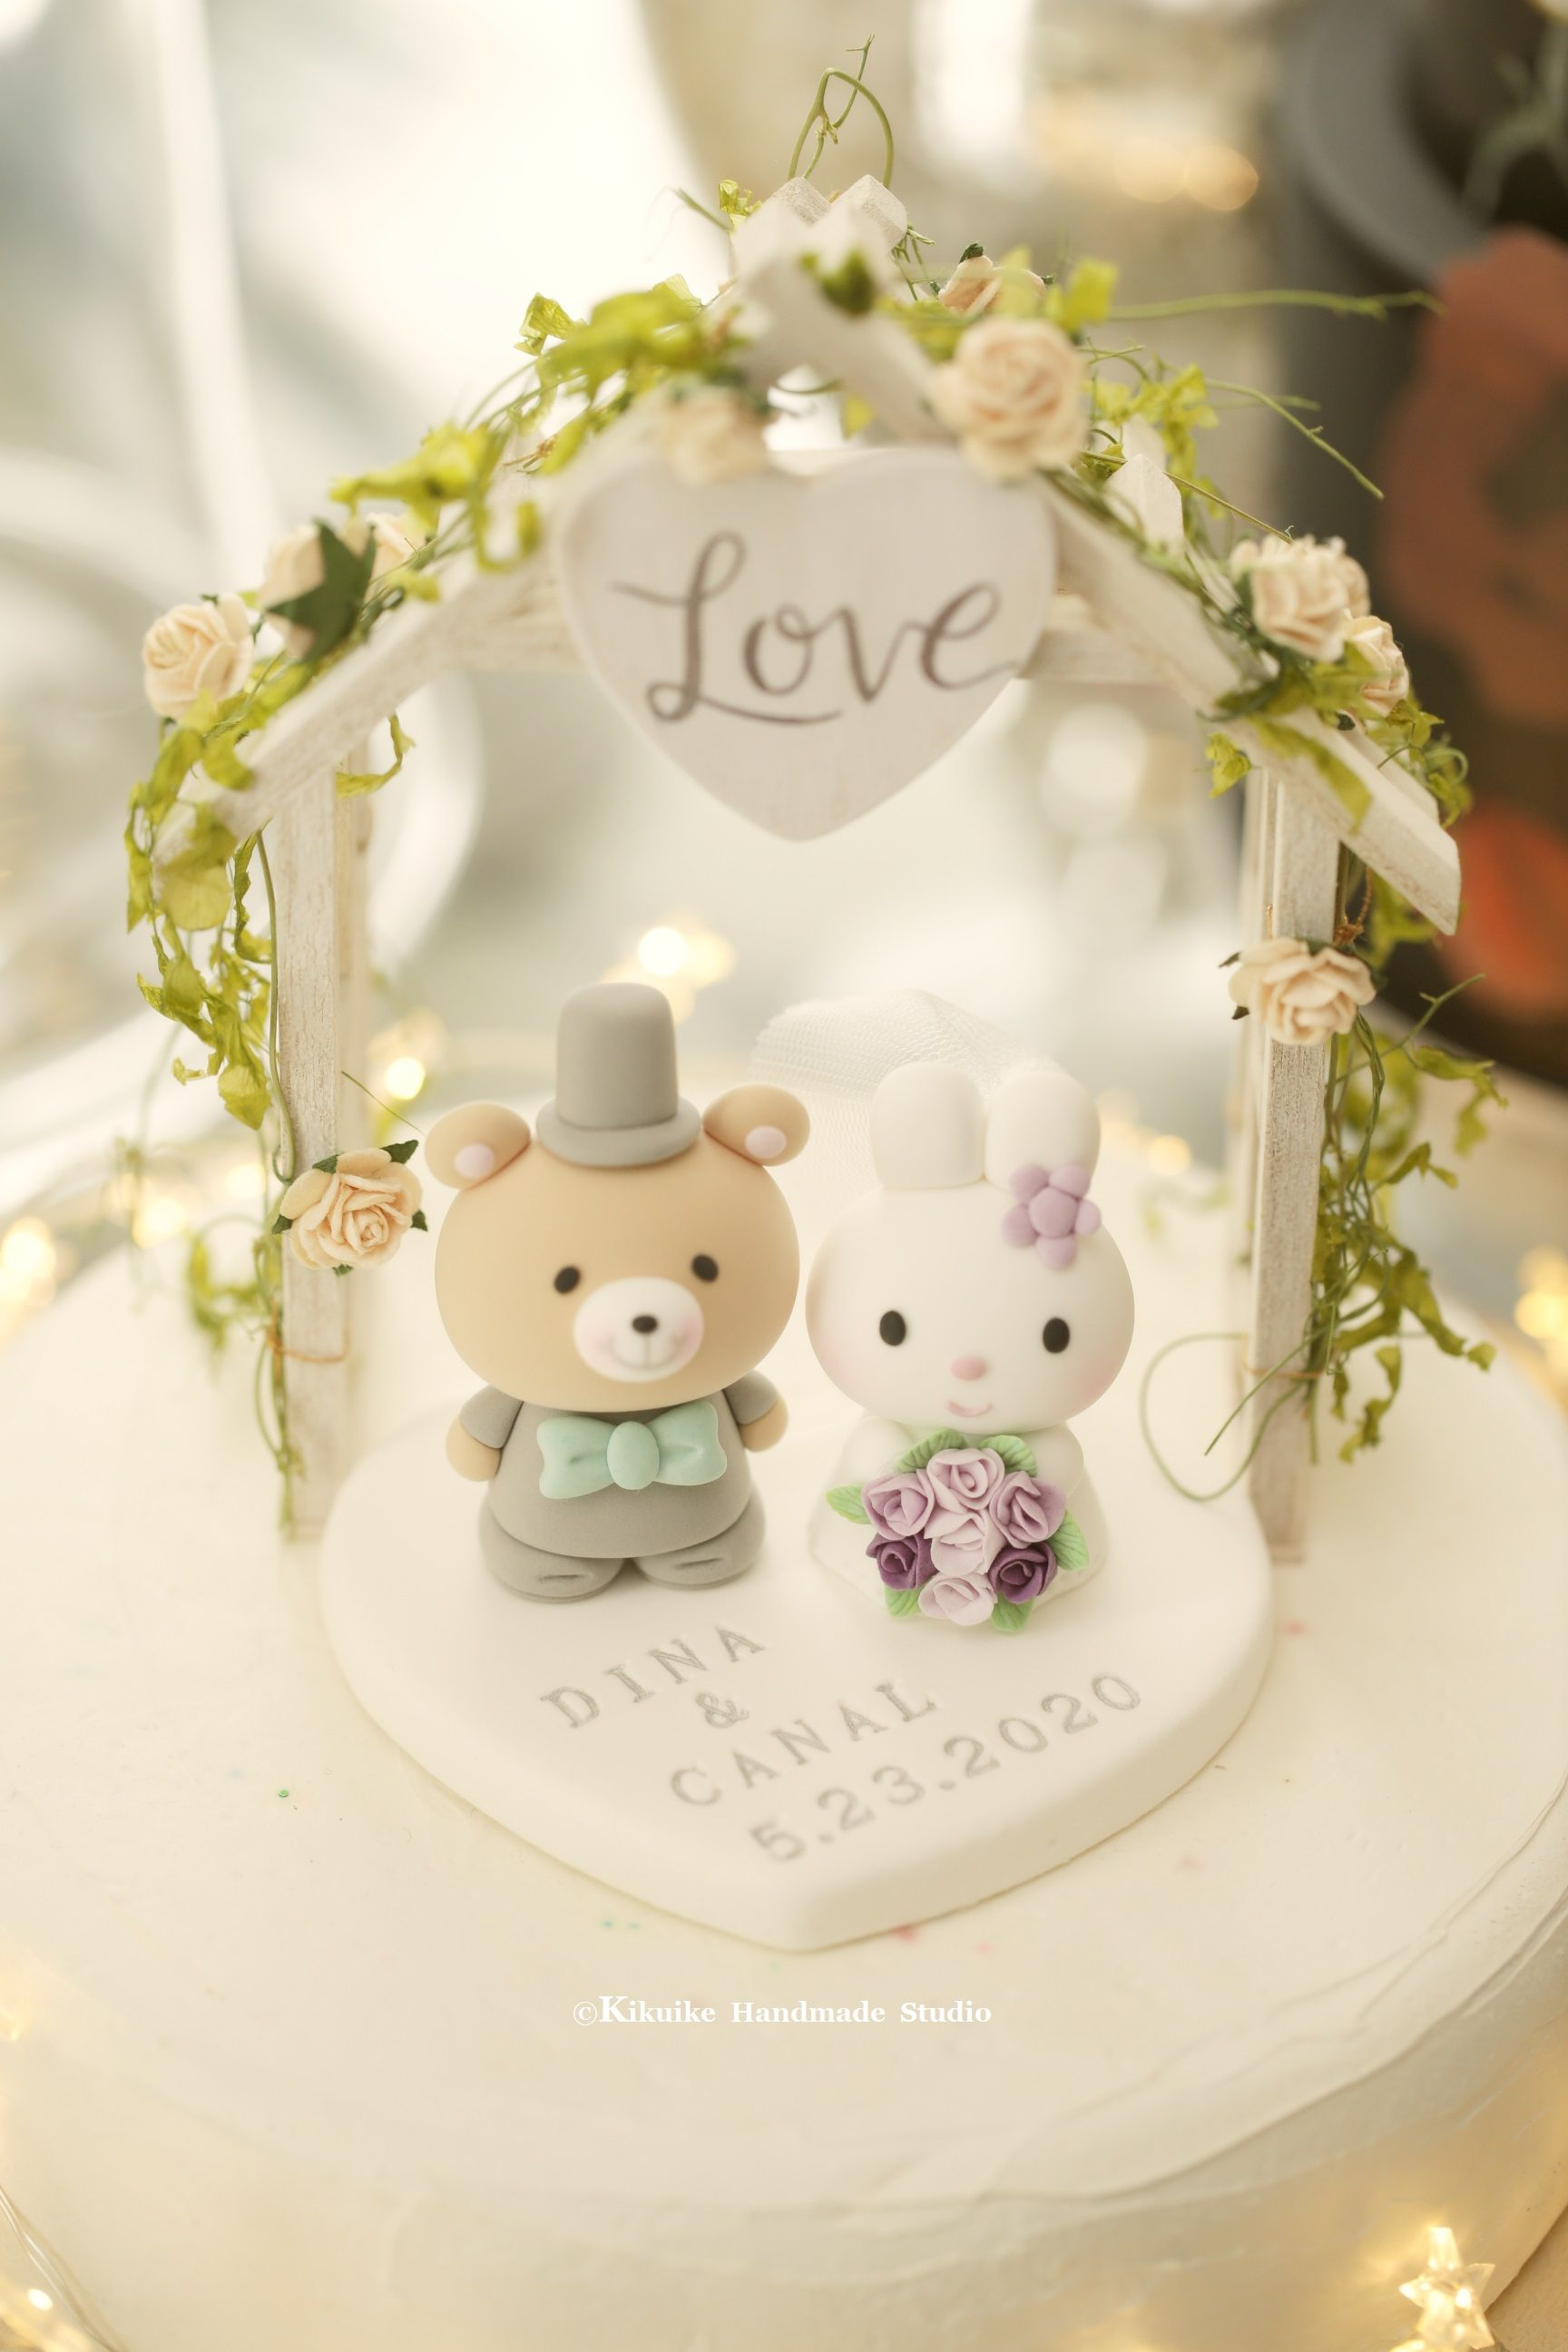 Rabbit And Bear Wedding Cake Topper Etsy Wedding Cake Topper Etsy Wedding Cake Decorations Wedding Cake Toppers